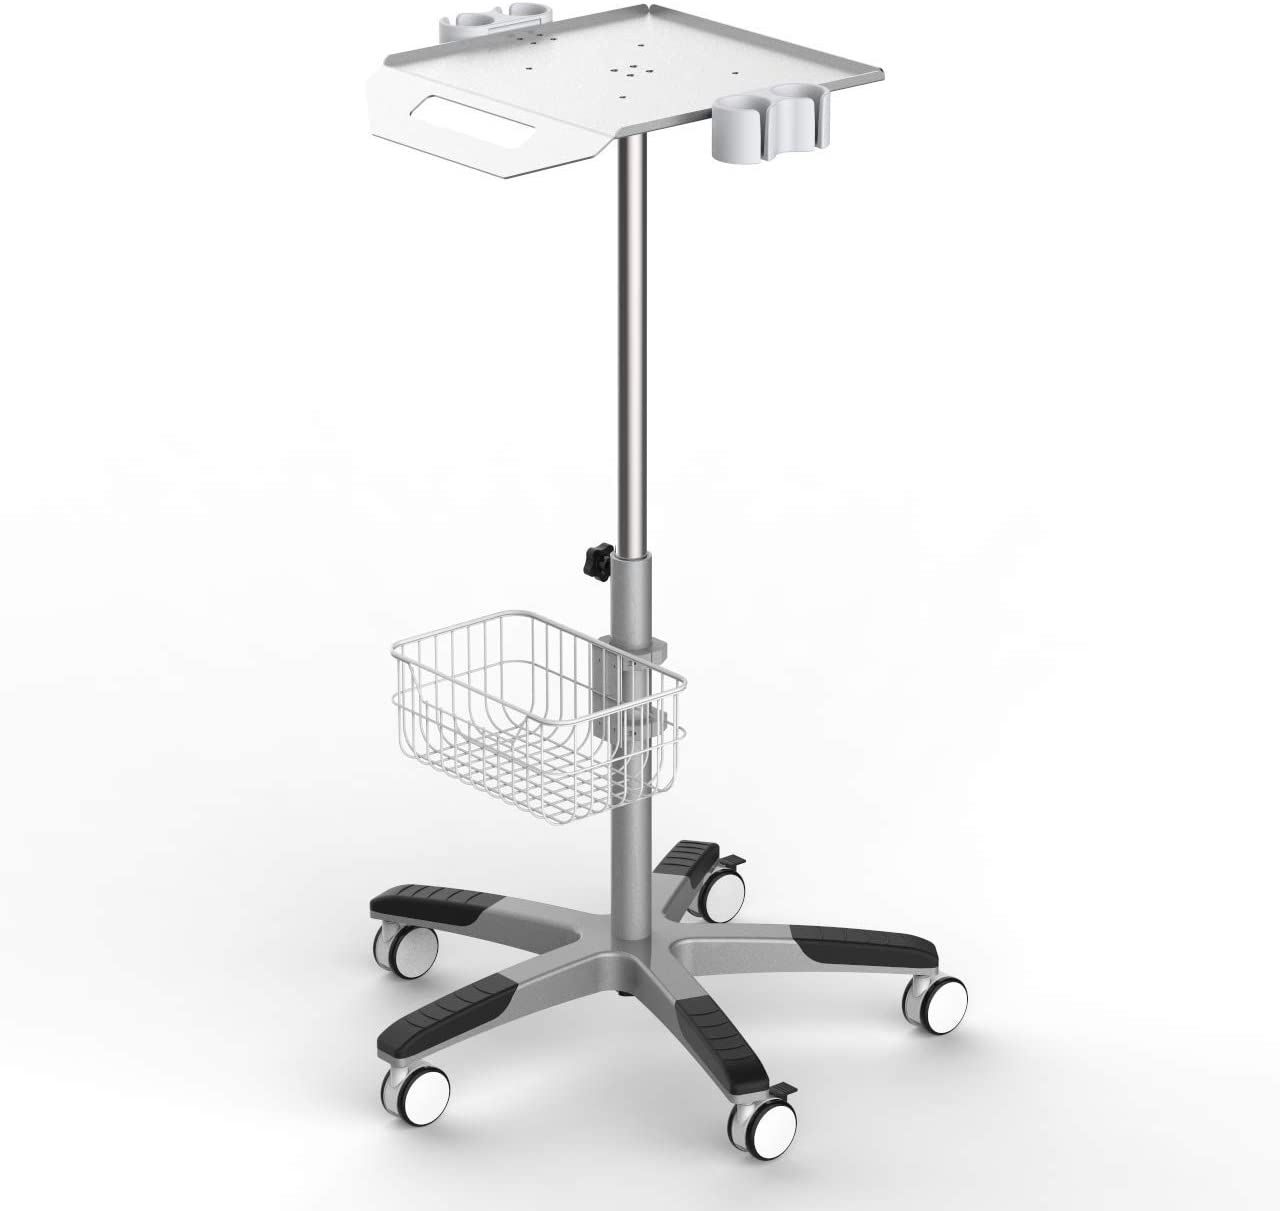 Mobile Rolling Cart for Ultrasound Imaging System Adjustable Height, Best for LCD Display Scanner.